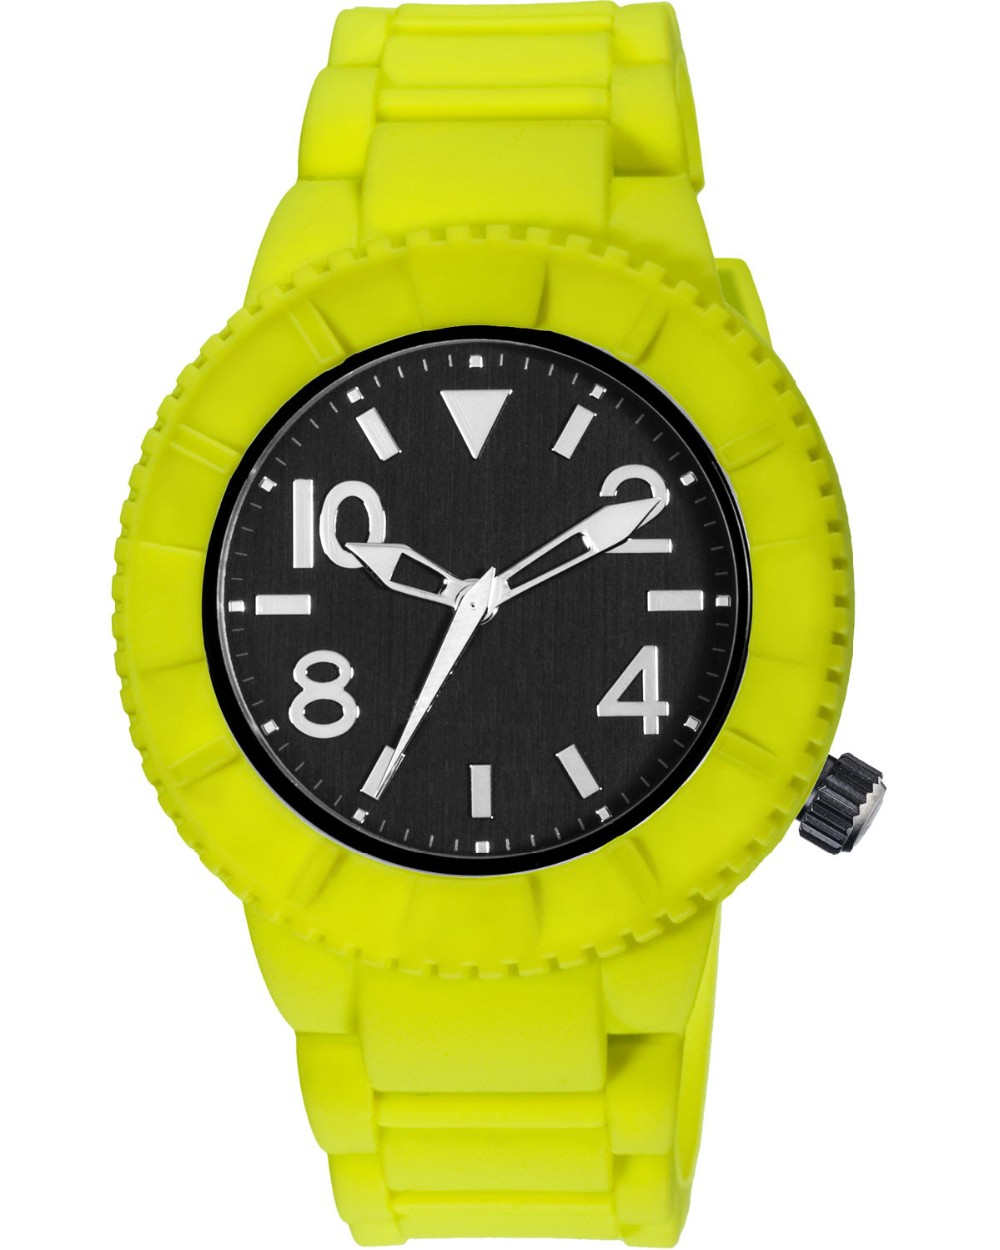 Wholesales cheap price custom silicon watch with colorful designs